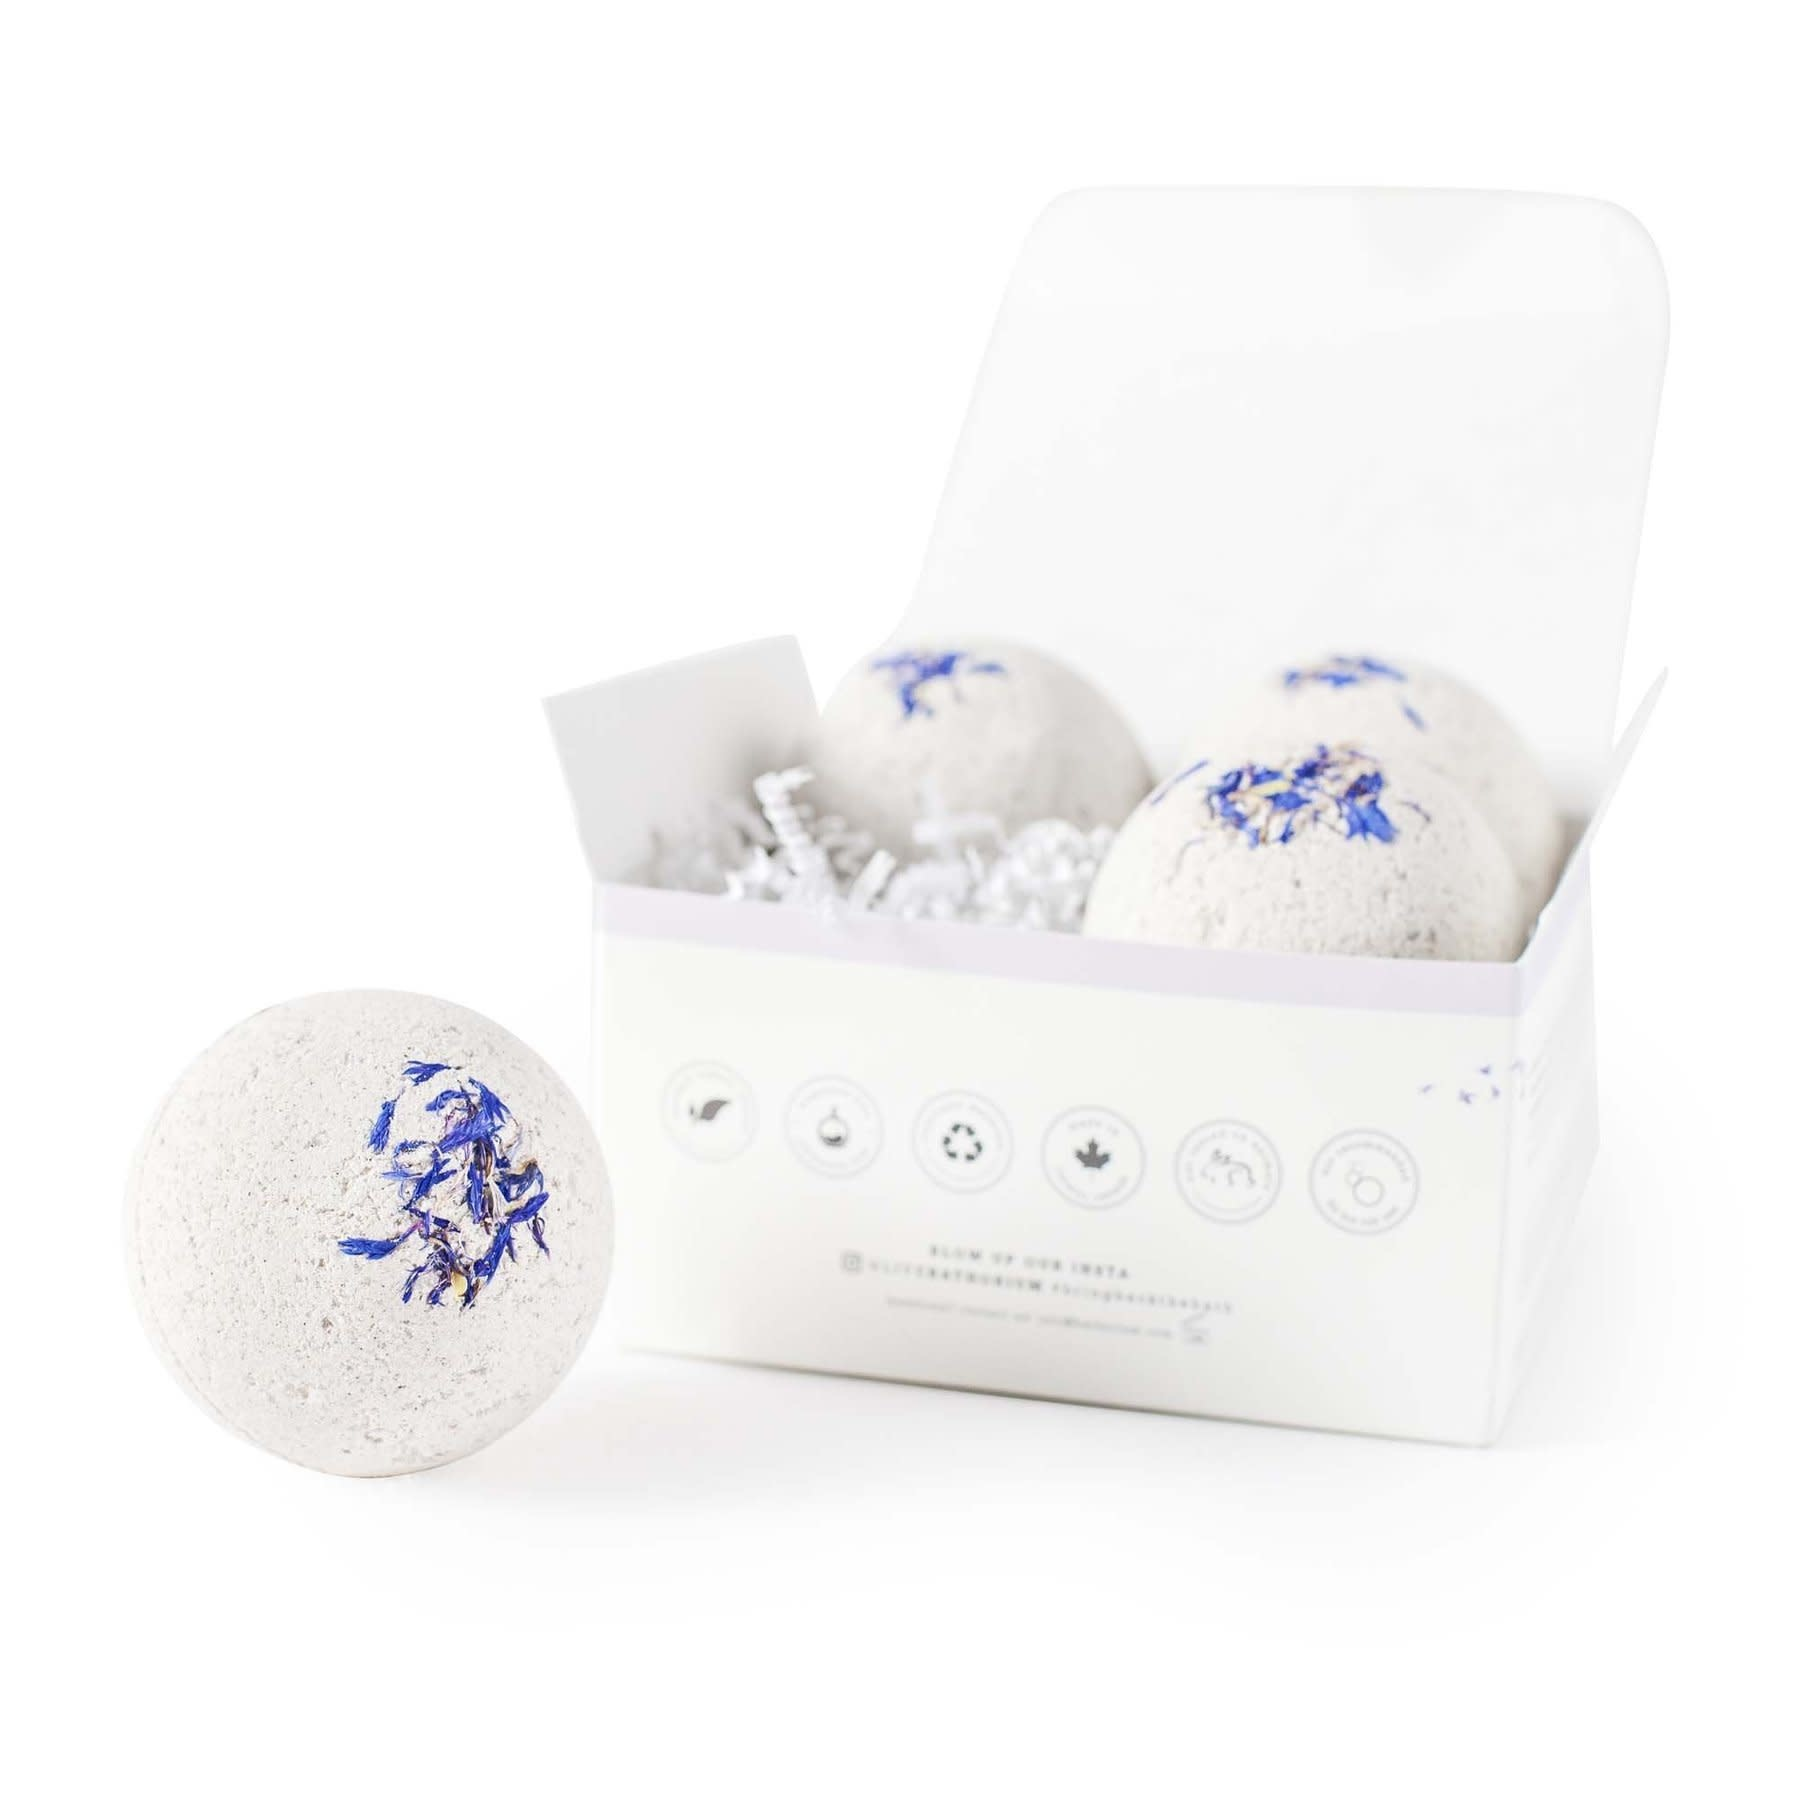 Bathorium Bath Bomb Snooze Bomb - Four Pack